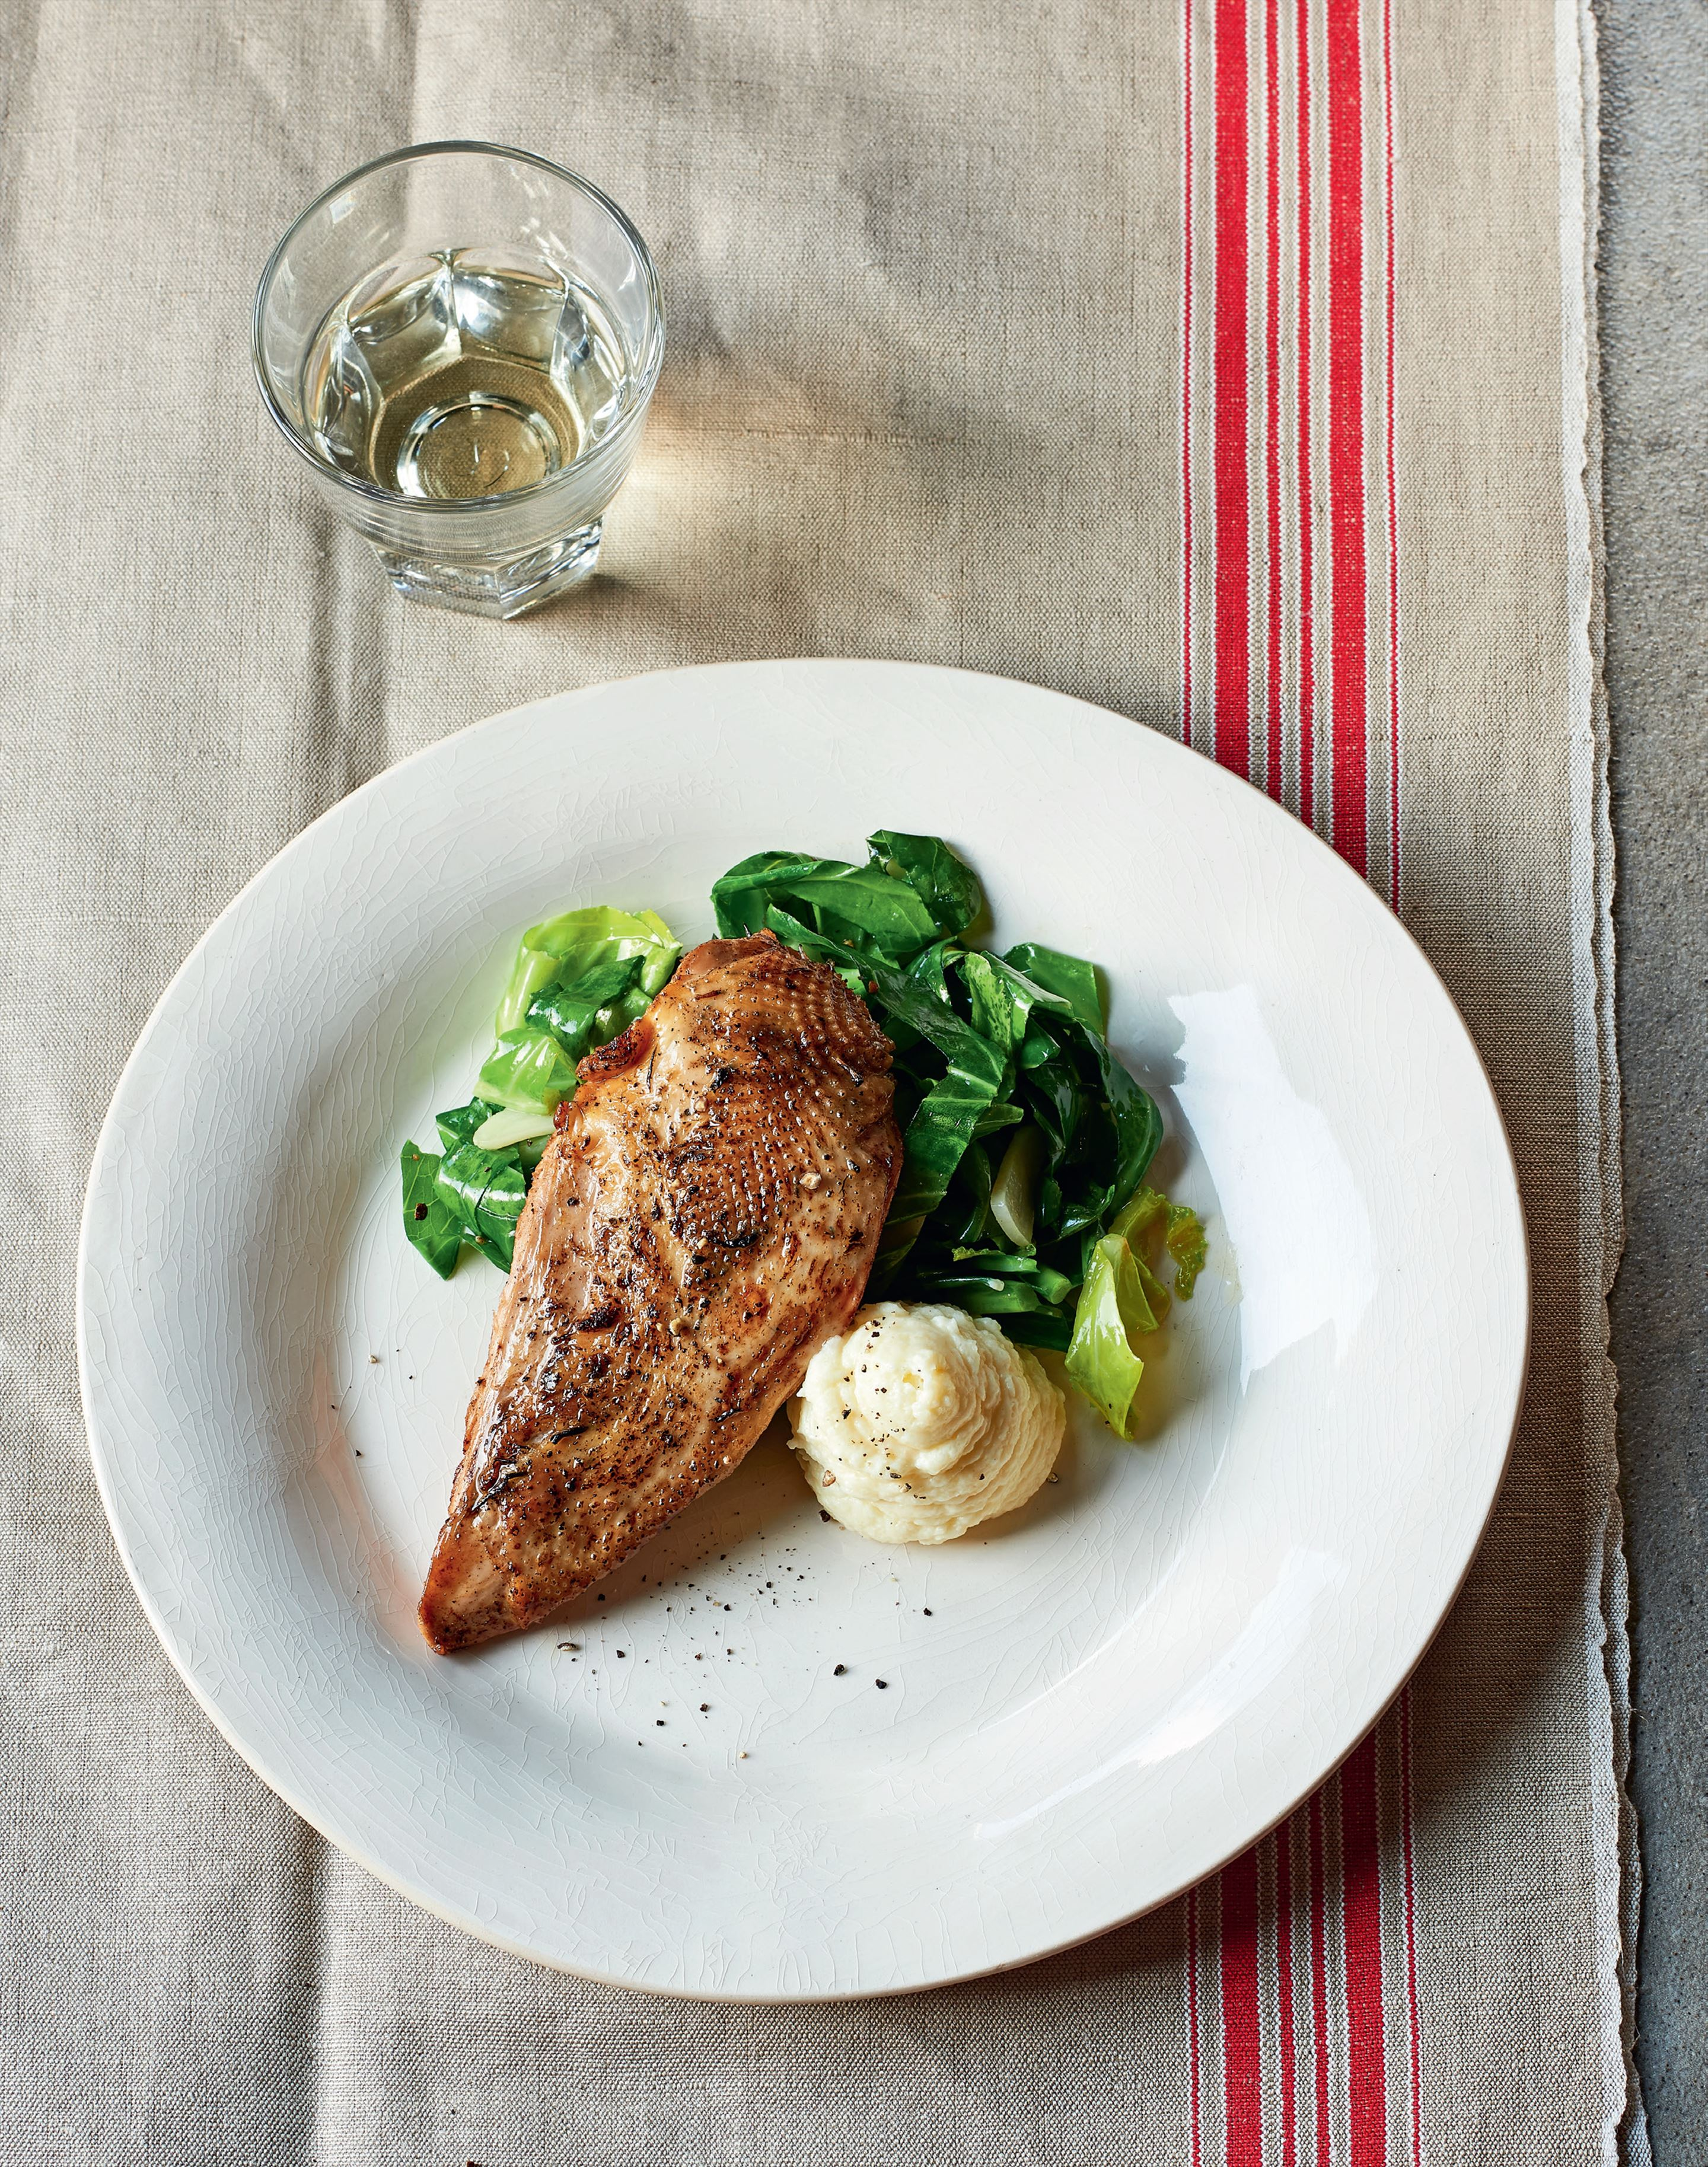 Pheasant breast with onion purée & spring greens